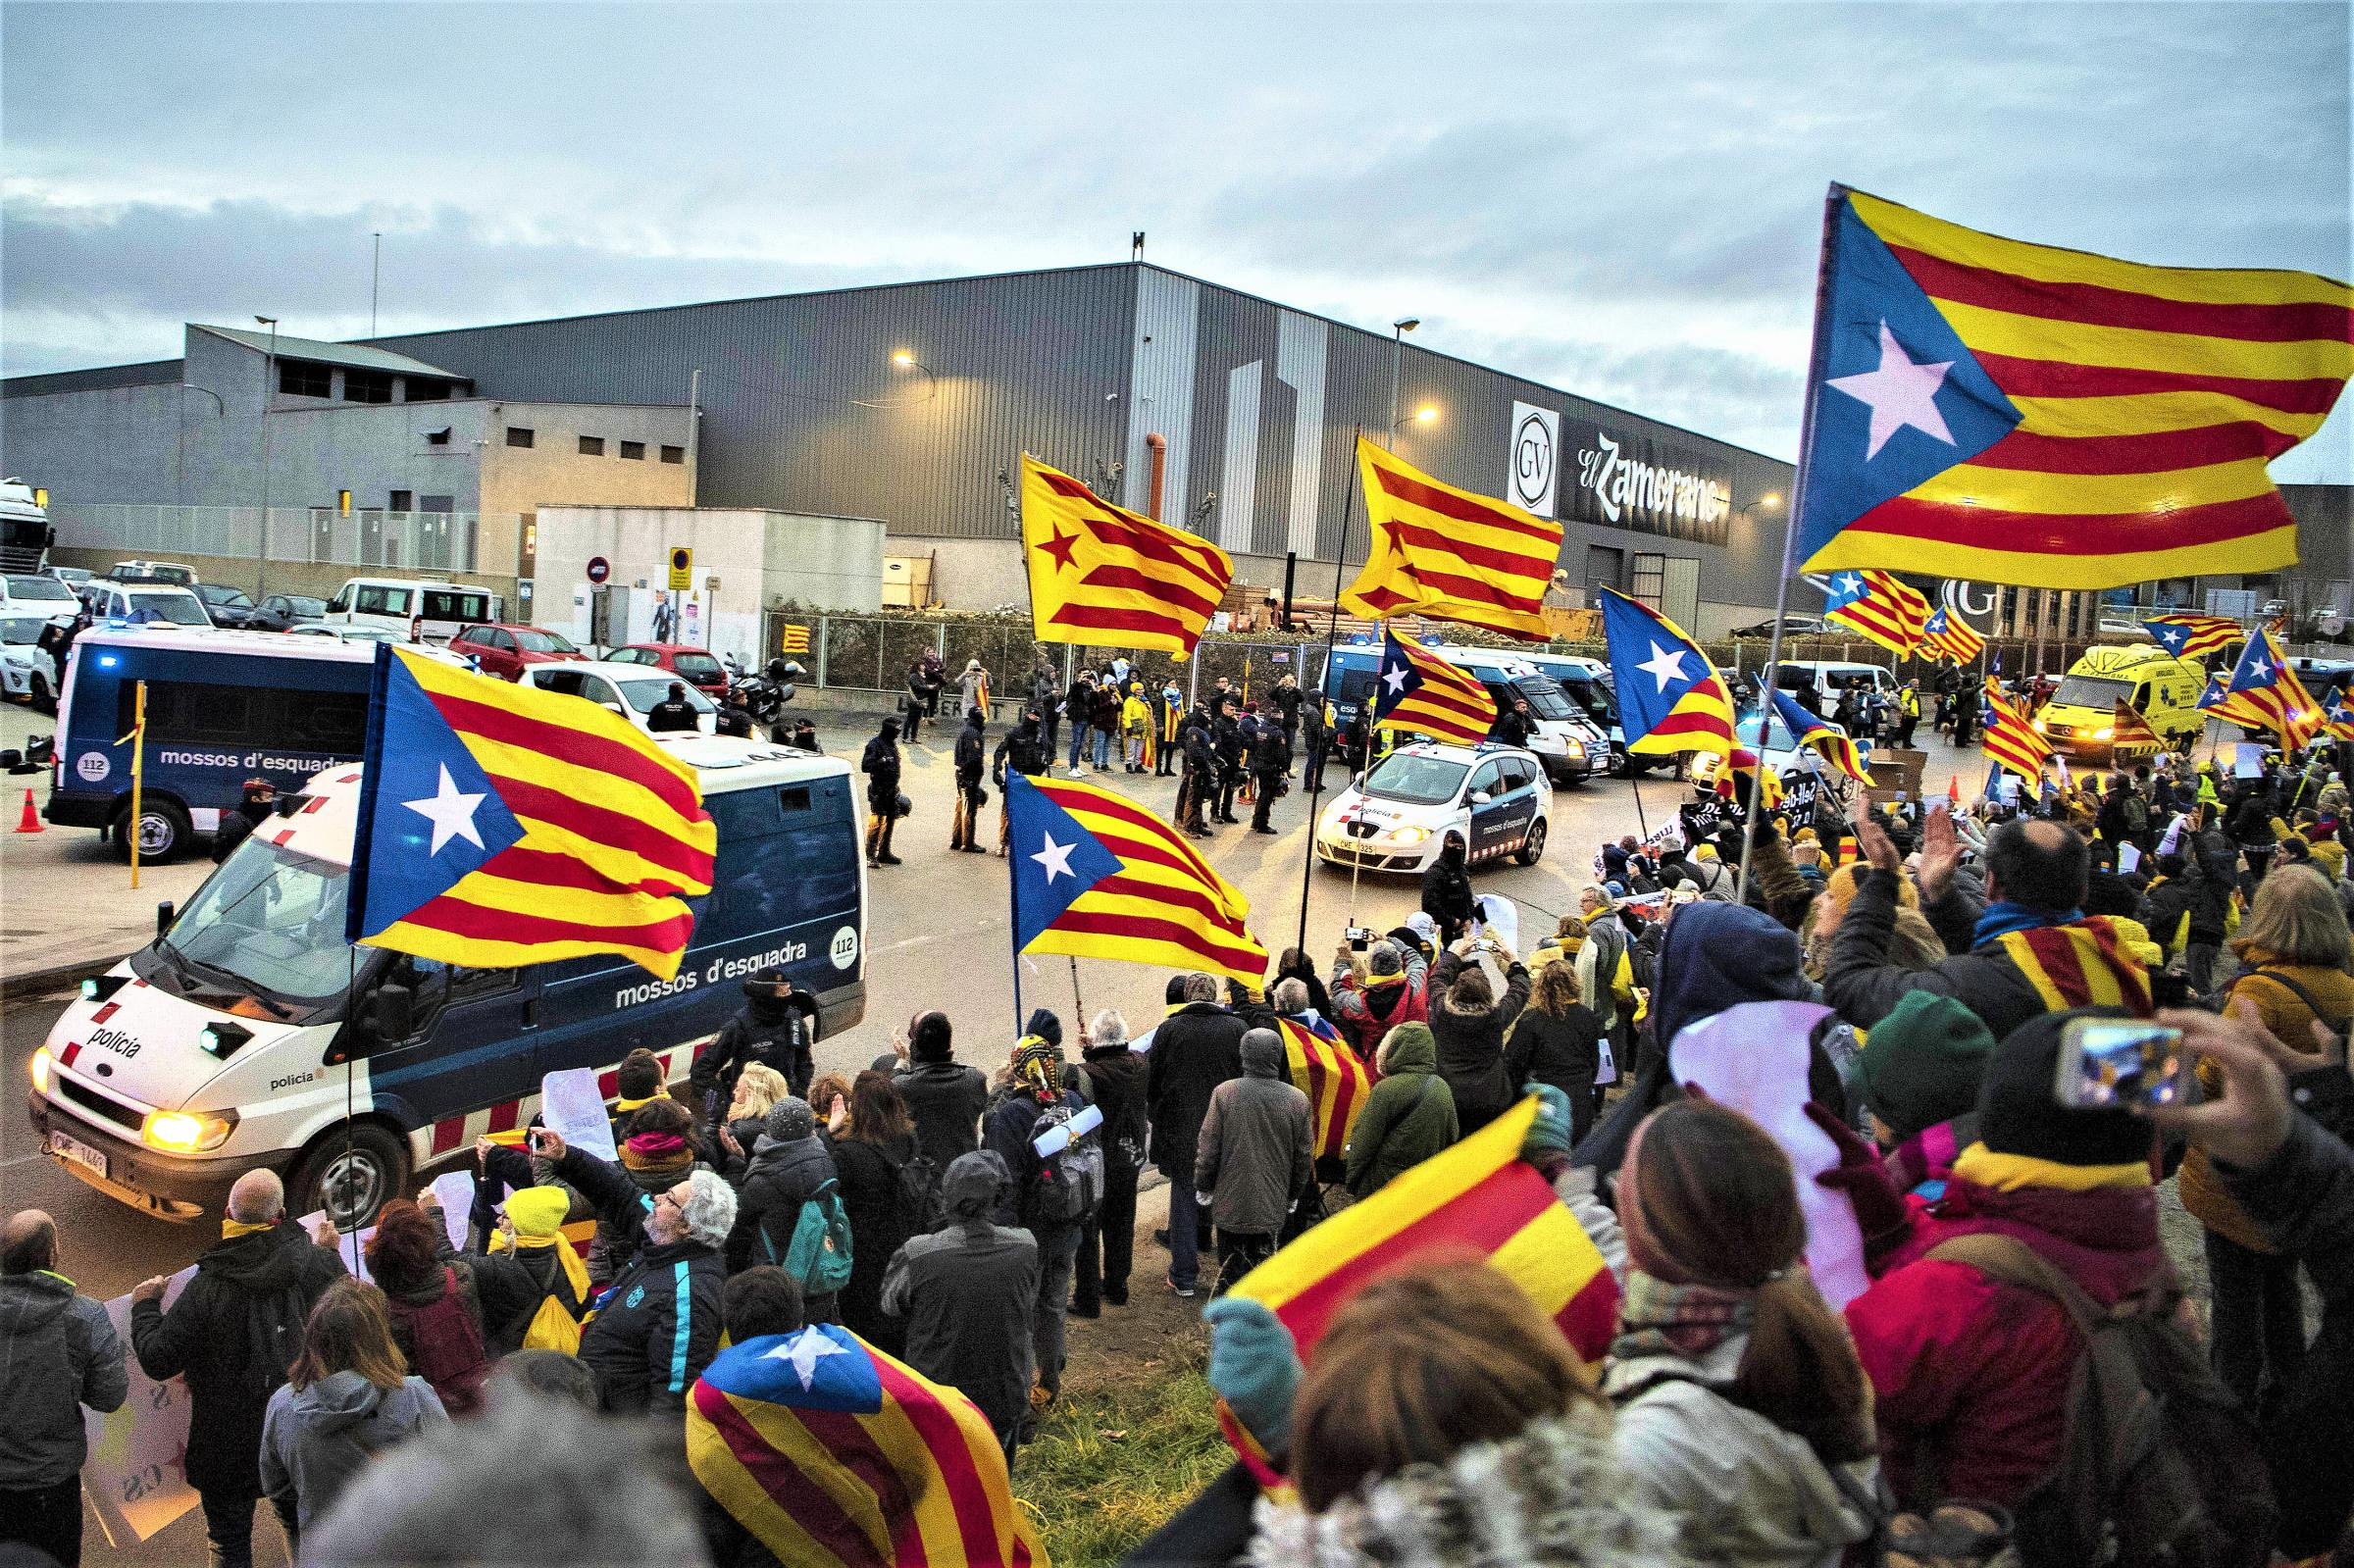 The Spanish National Police will continue to round up less well known activists for their political 'crimes'